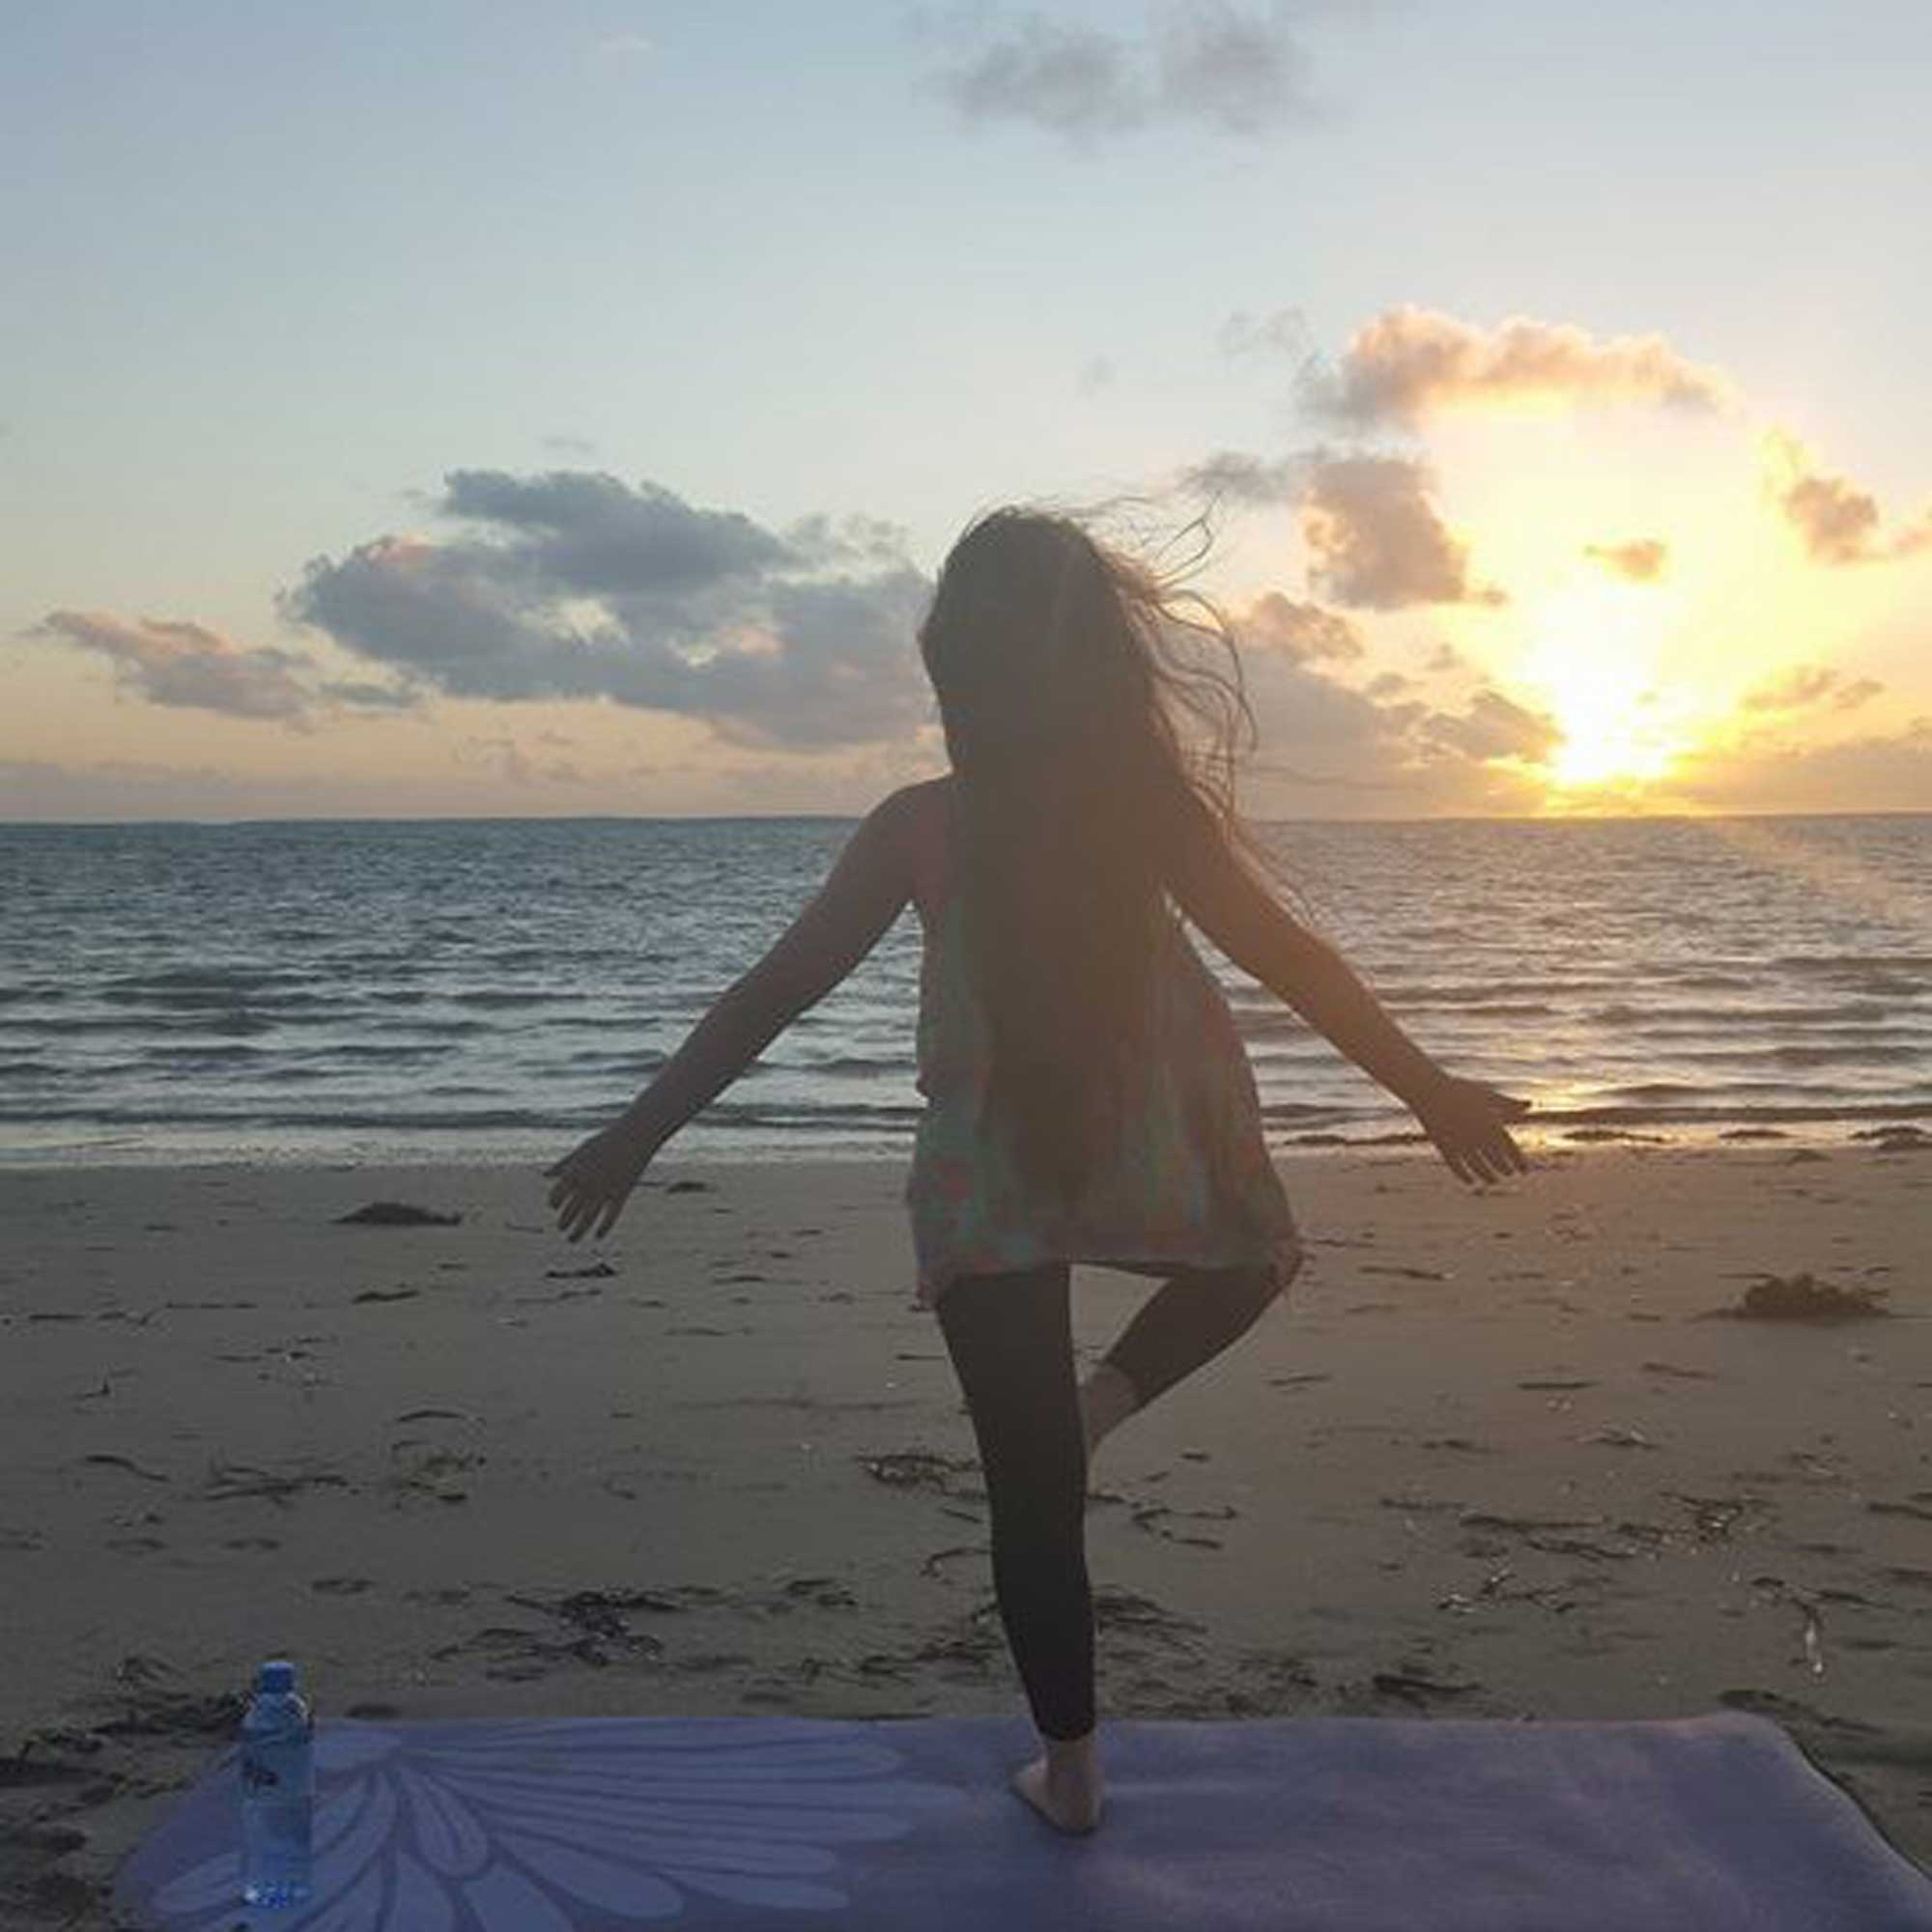 Tookii things to do with kids yoga one of the summer activities for kids